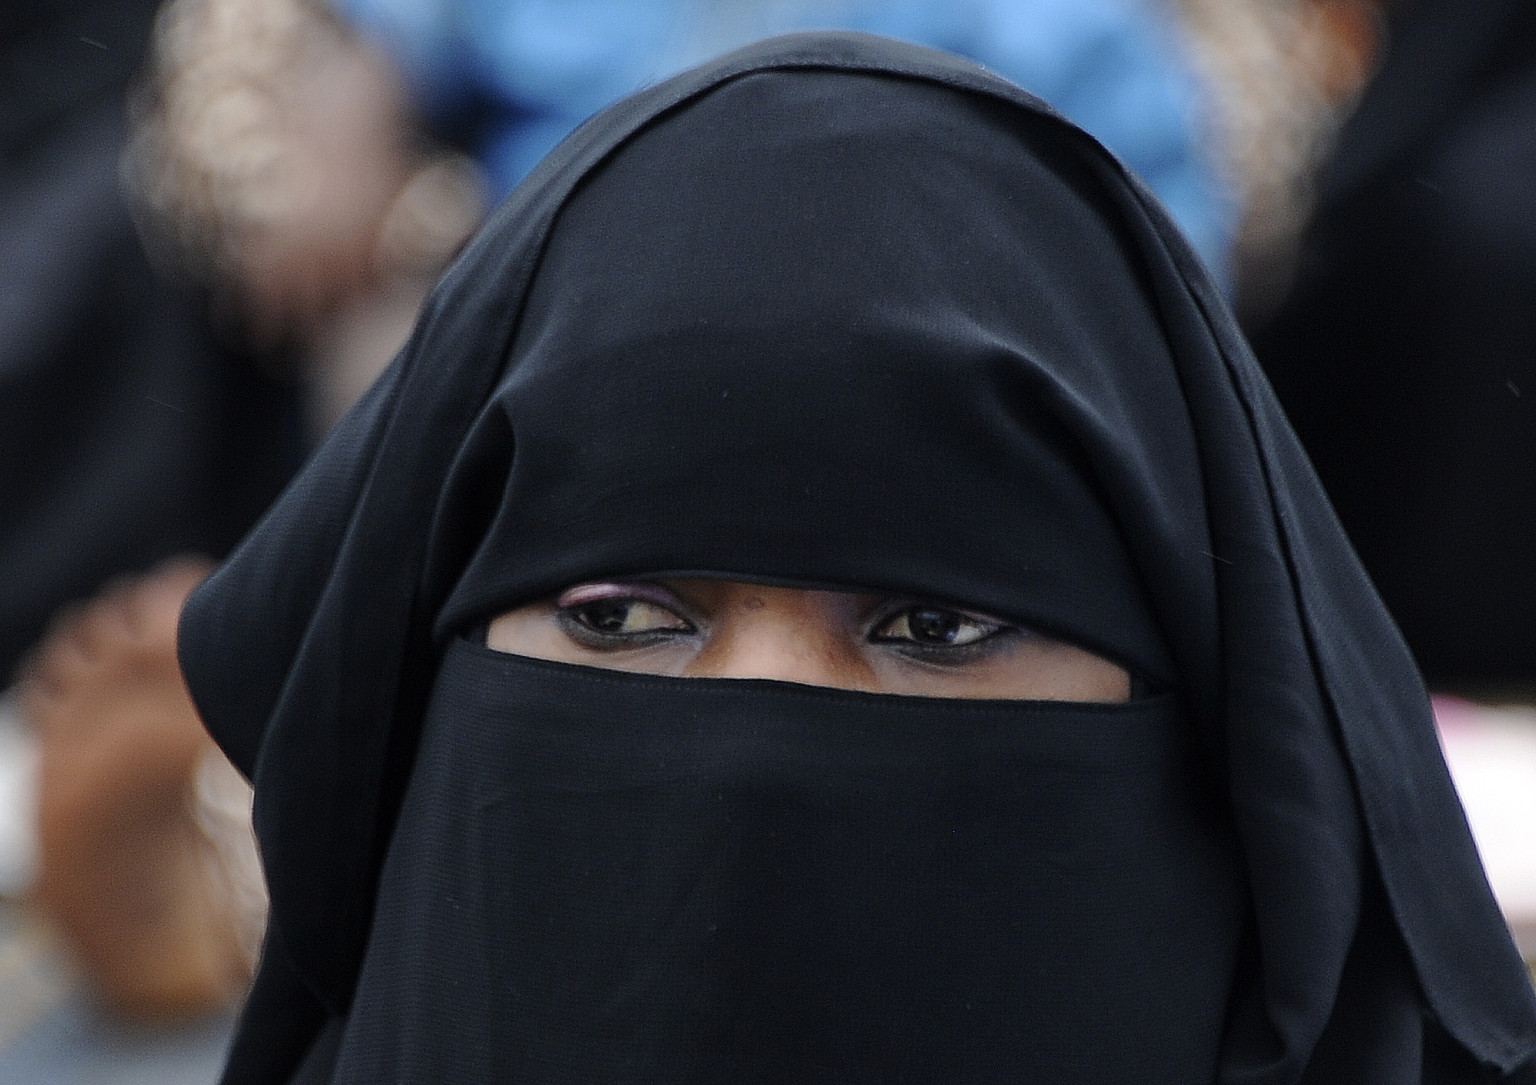 Muslim Full Face Veil Not Appropriate In Classrooms Or